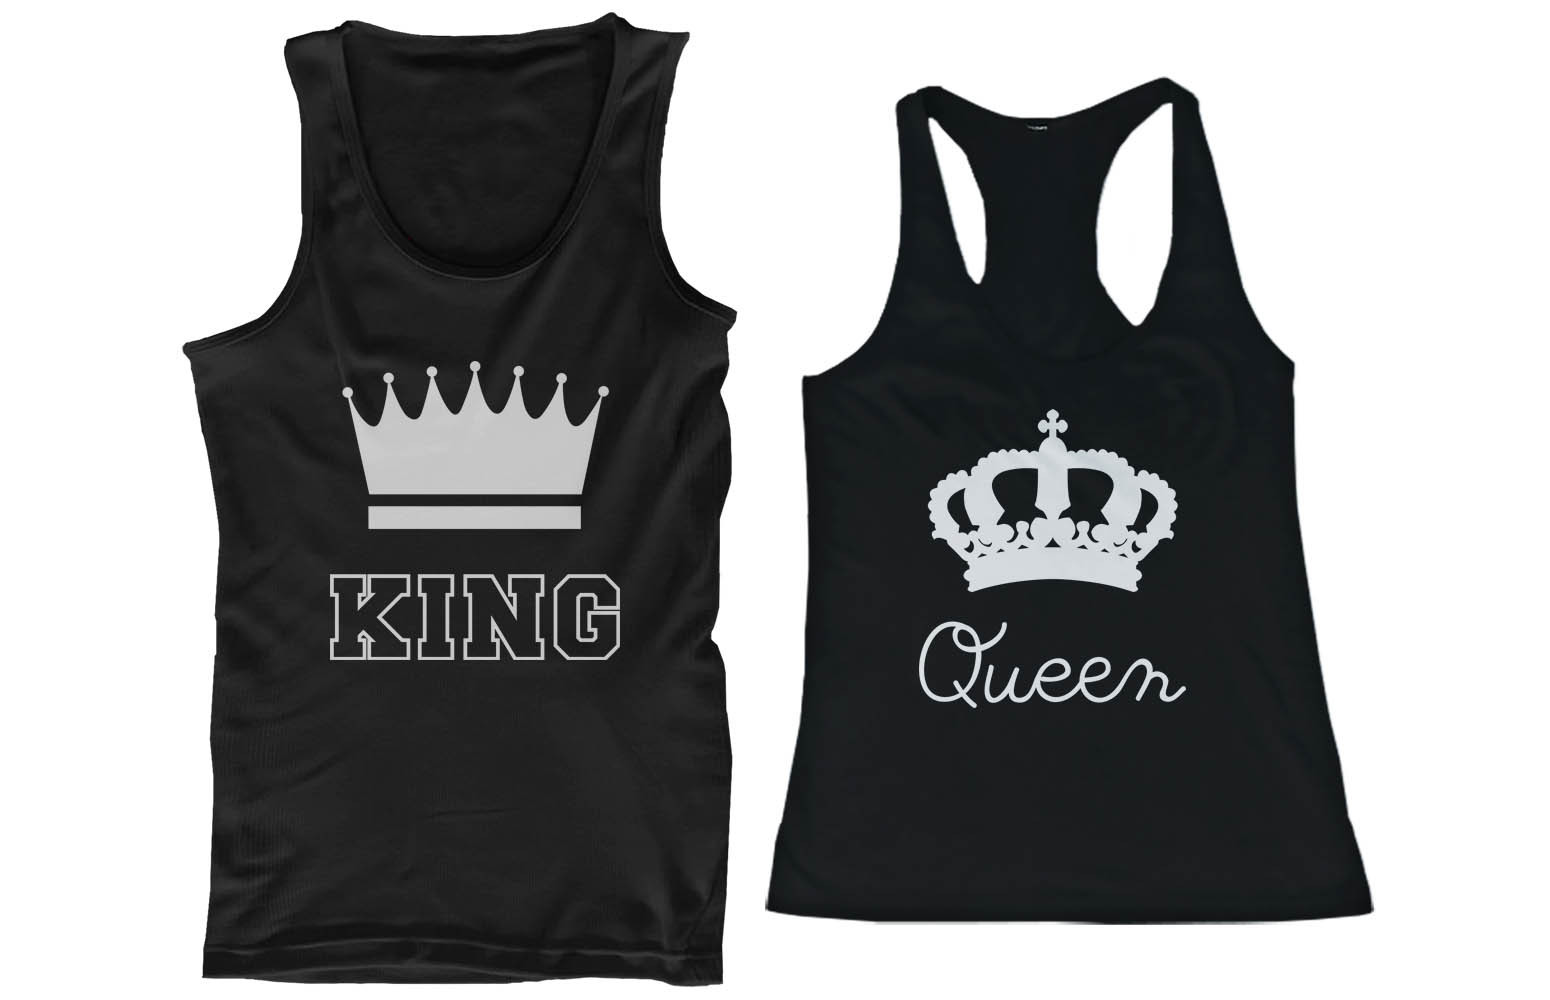 Details about His and Hers Matching Couple Tank Tops - King and Queen ...